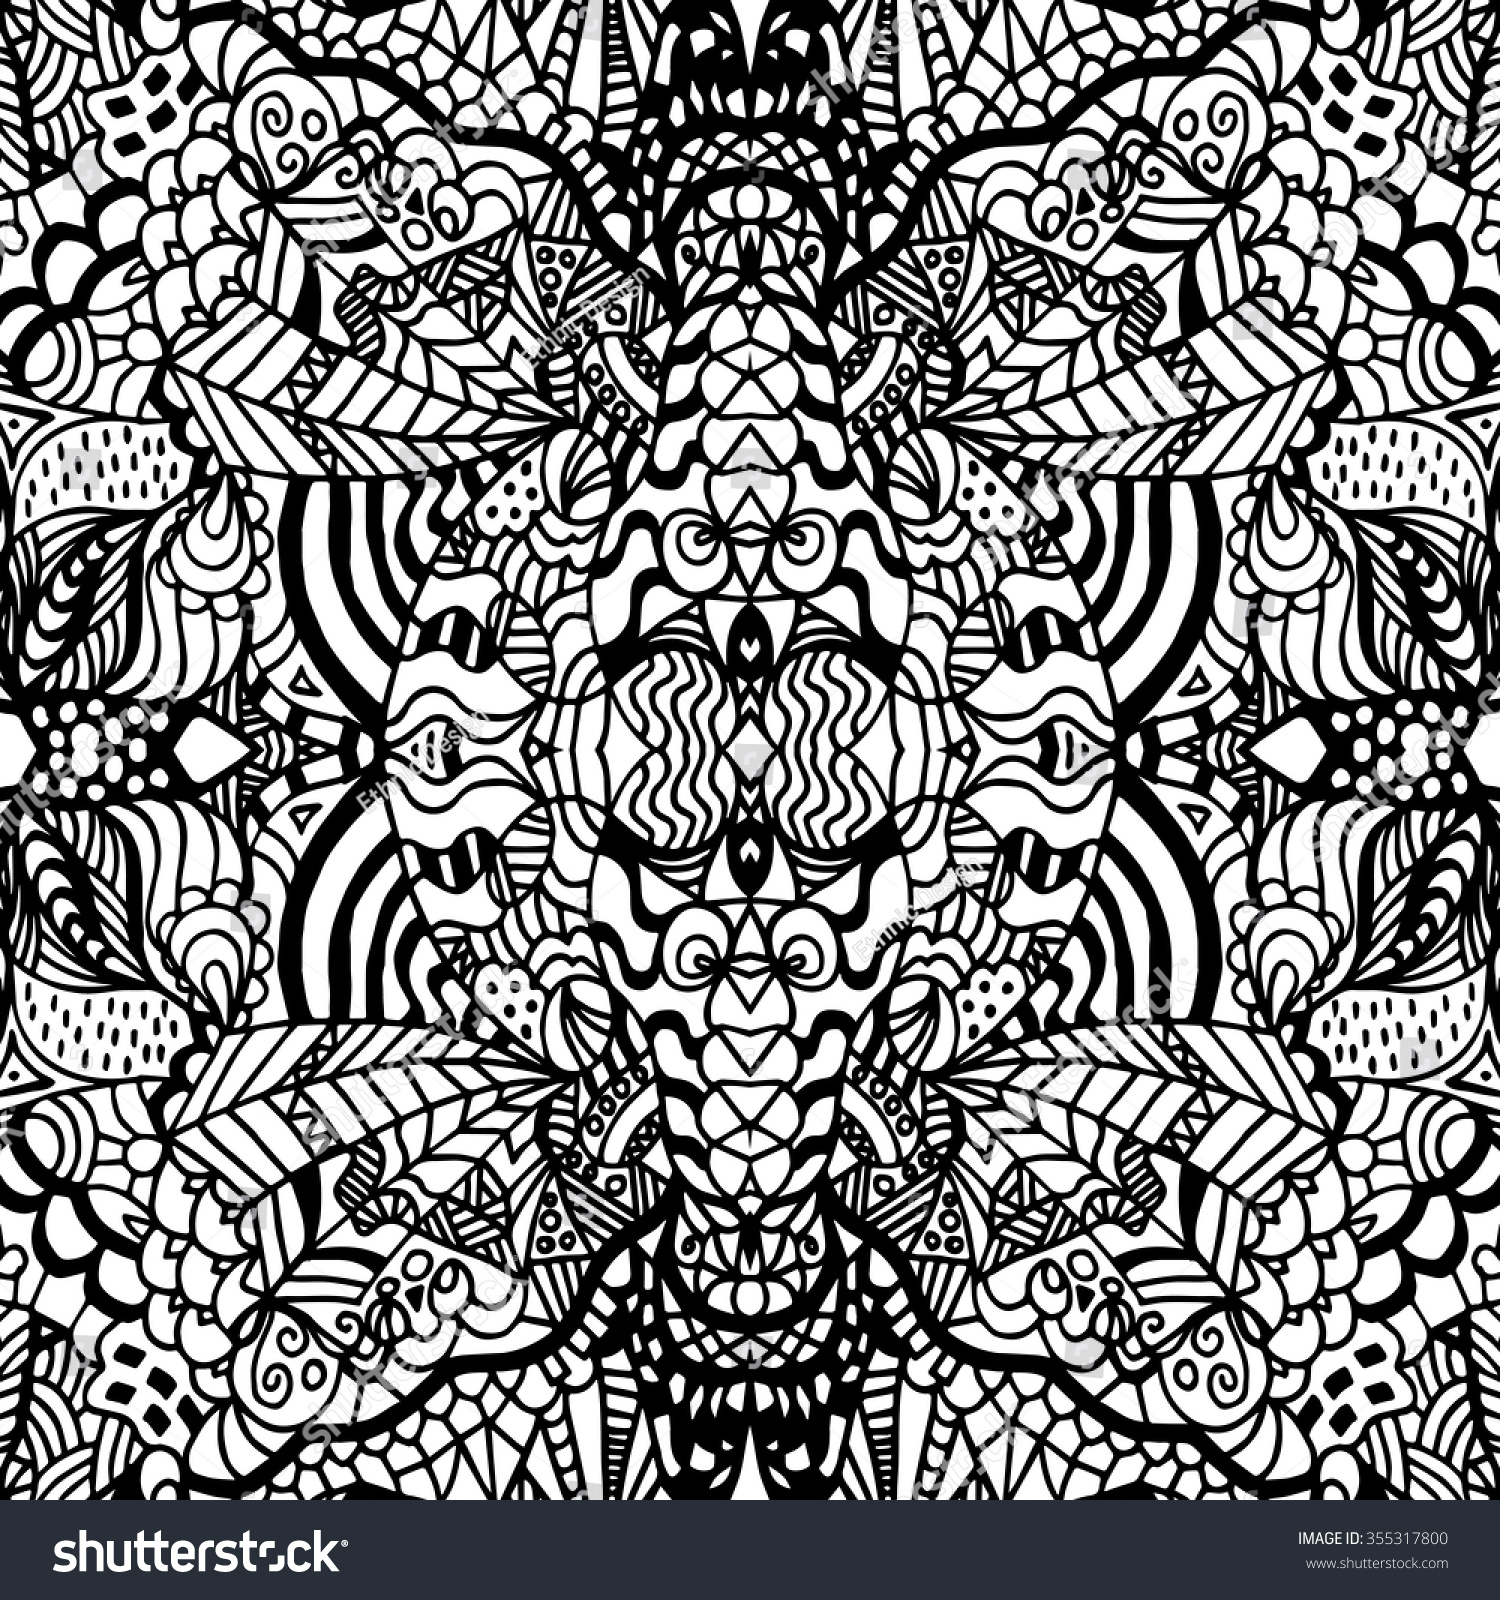 Adults colouring book pages - Stock Vector Adult Colouring Book Pages Vector Abstract